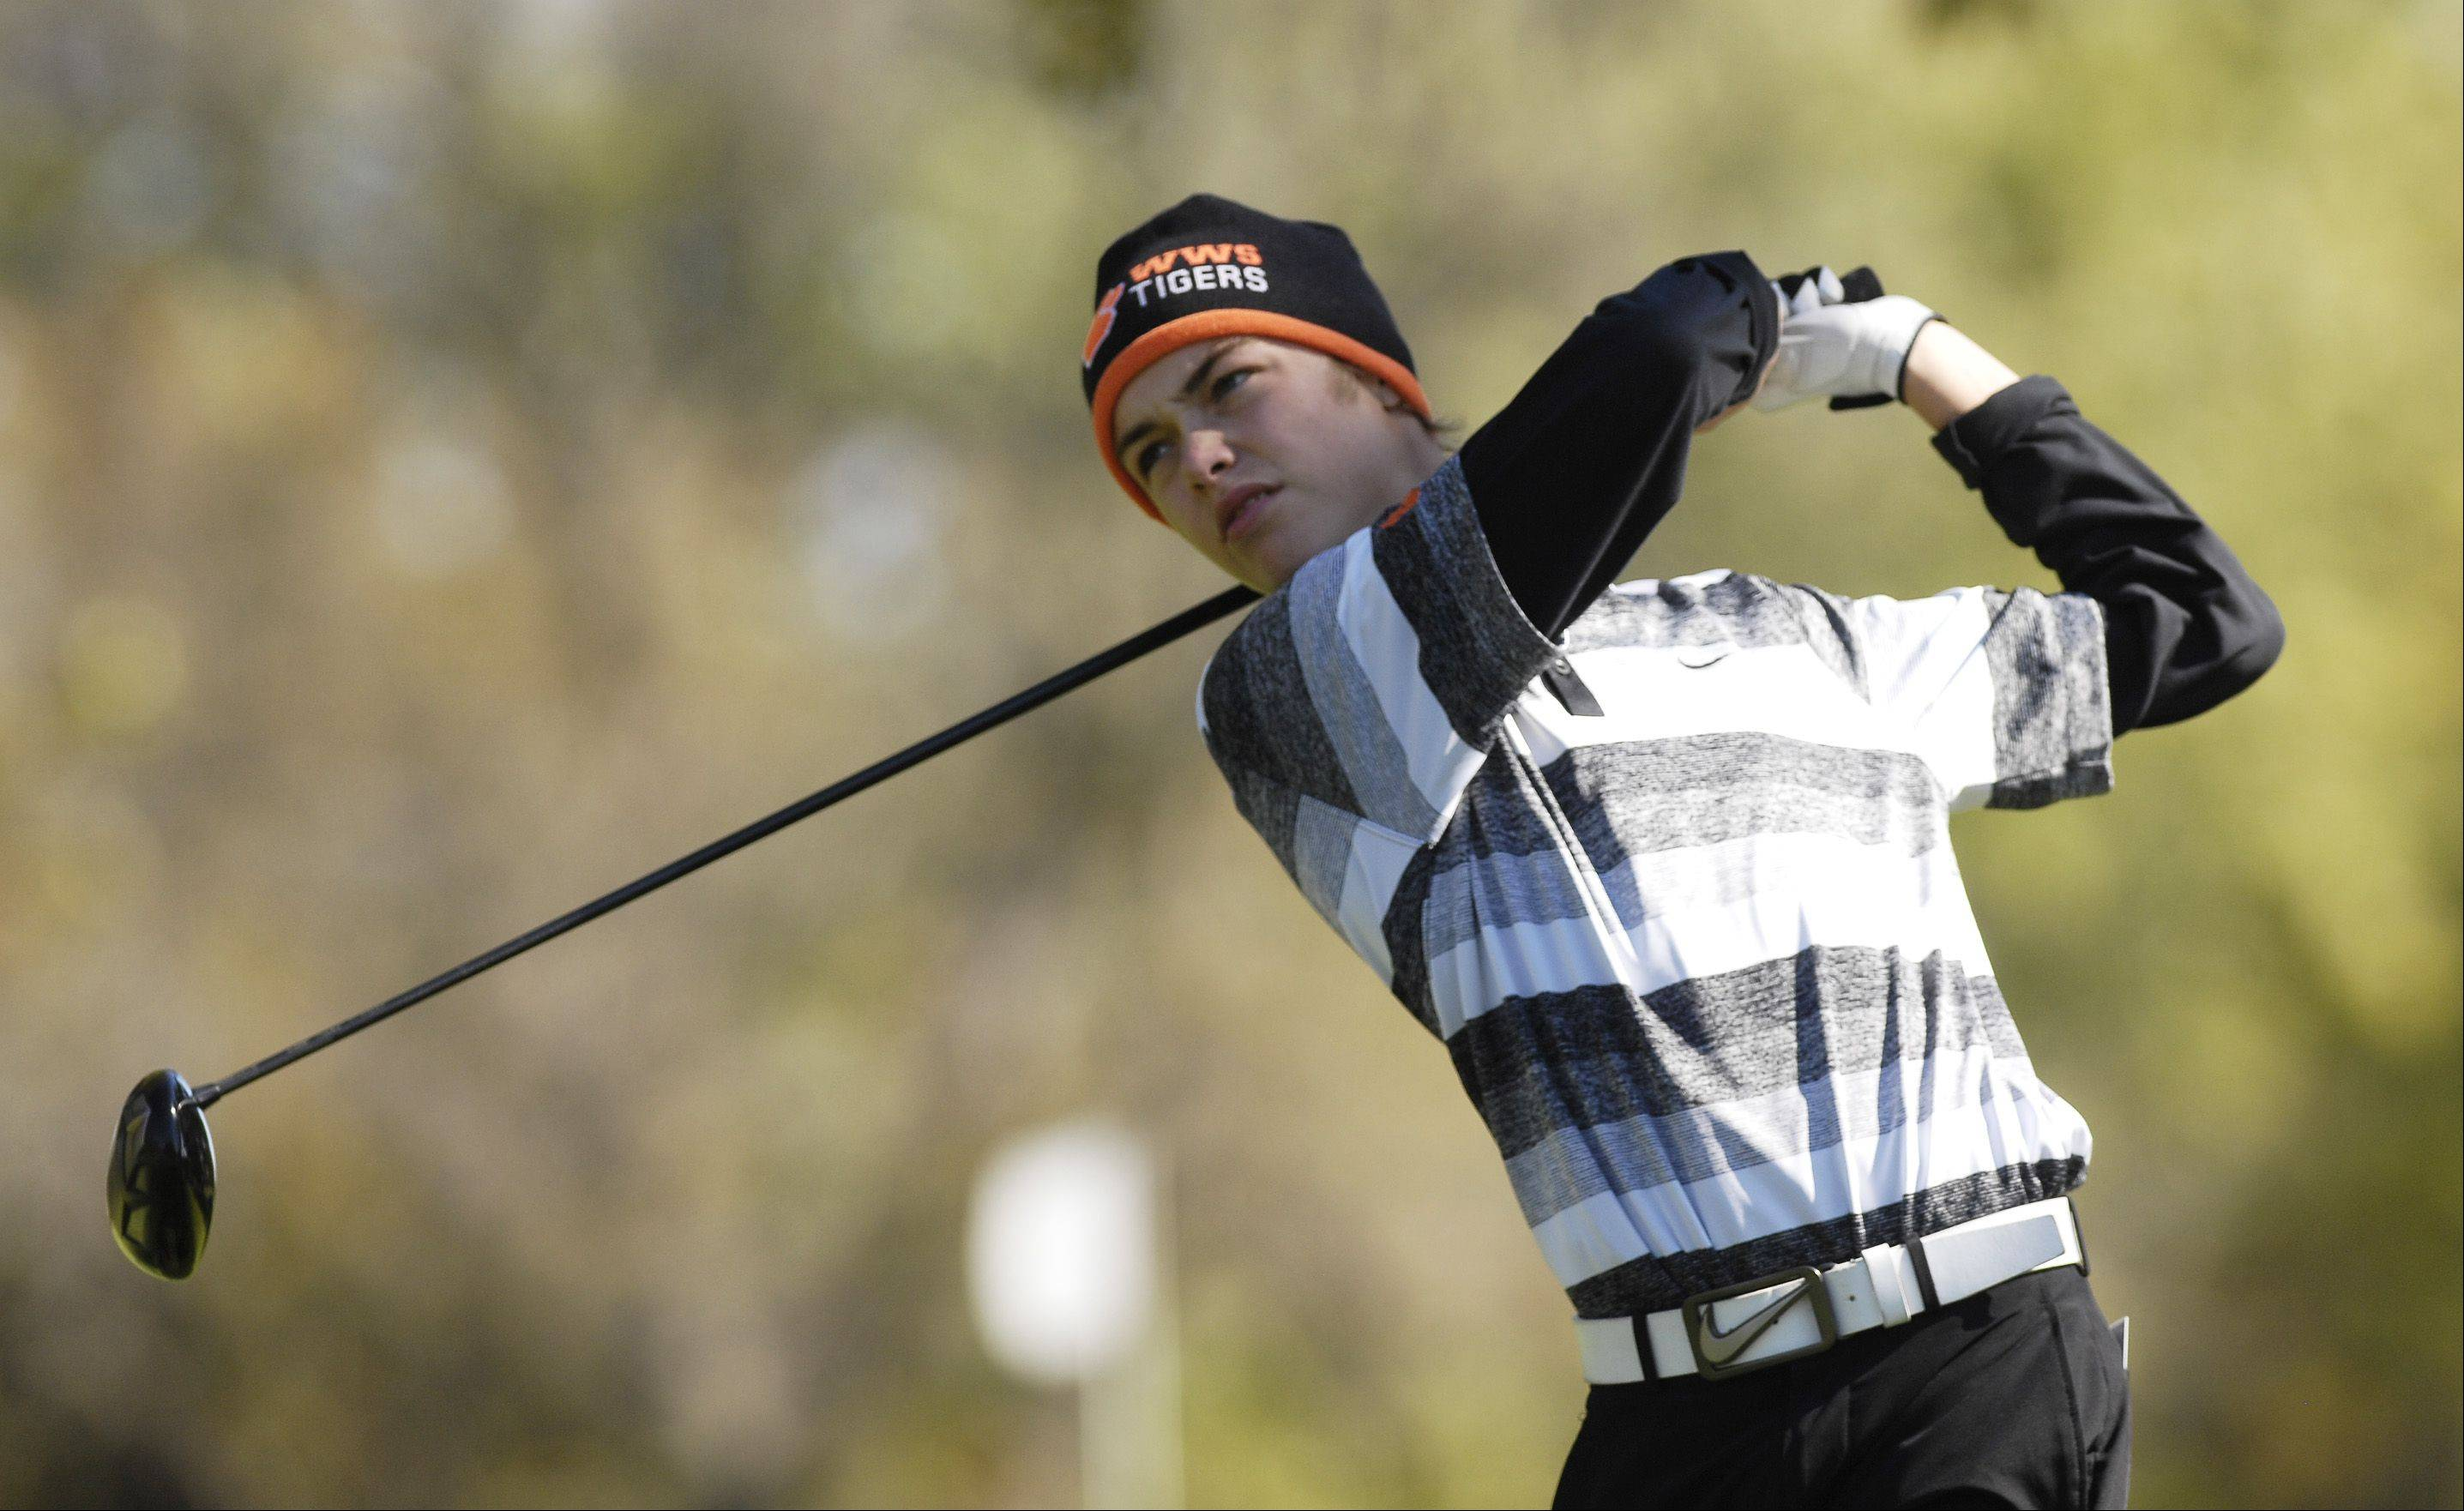 Tommy Dale of Wheaton Warrenville South tees off during the St. Charles East boys varsity golf sectional at St. Andrews Golf Club in West Chicago, Monday.